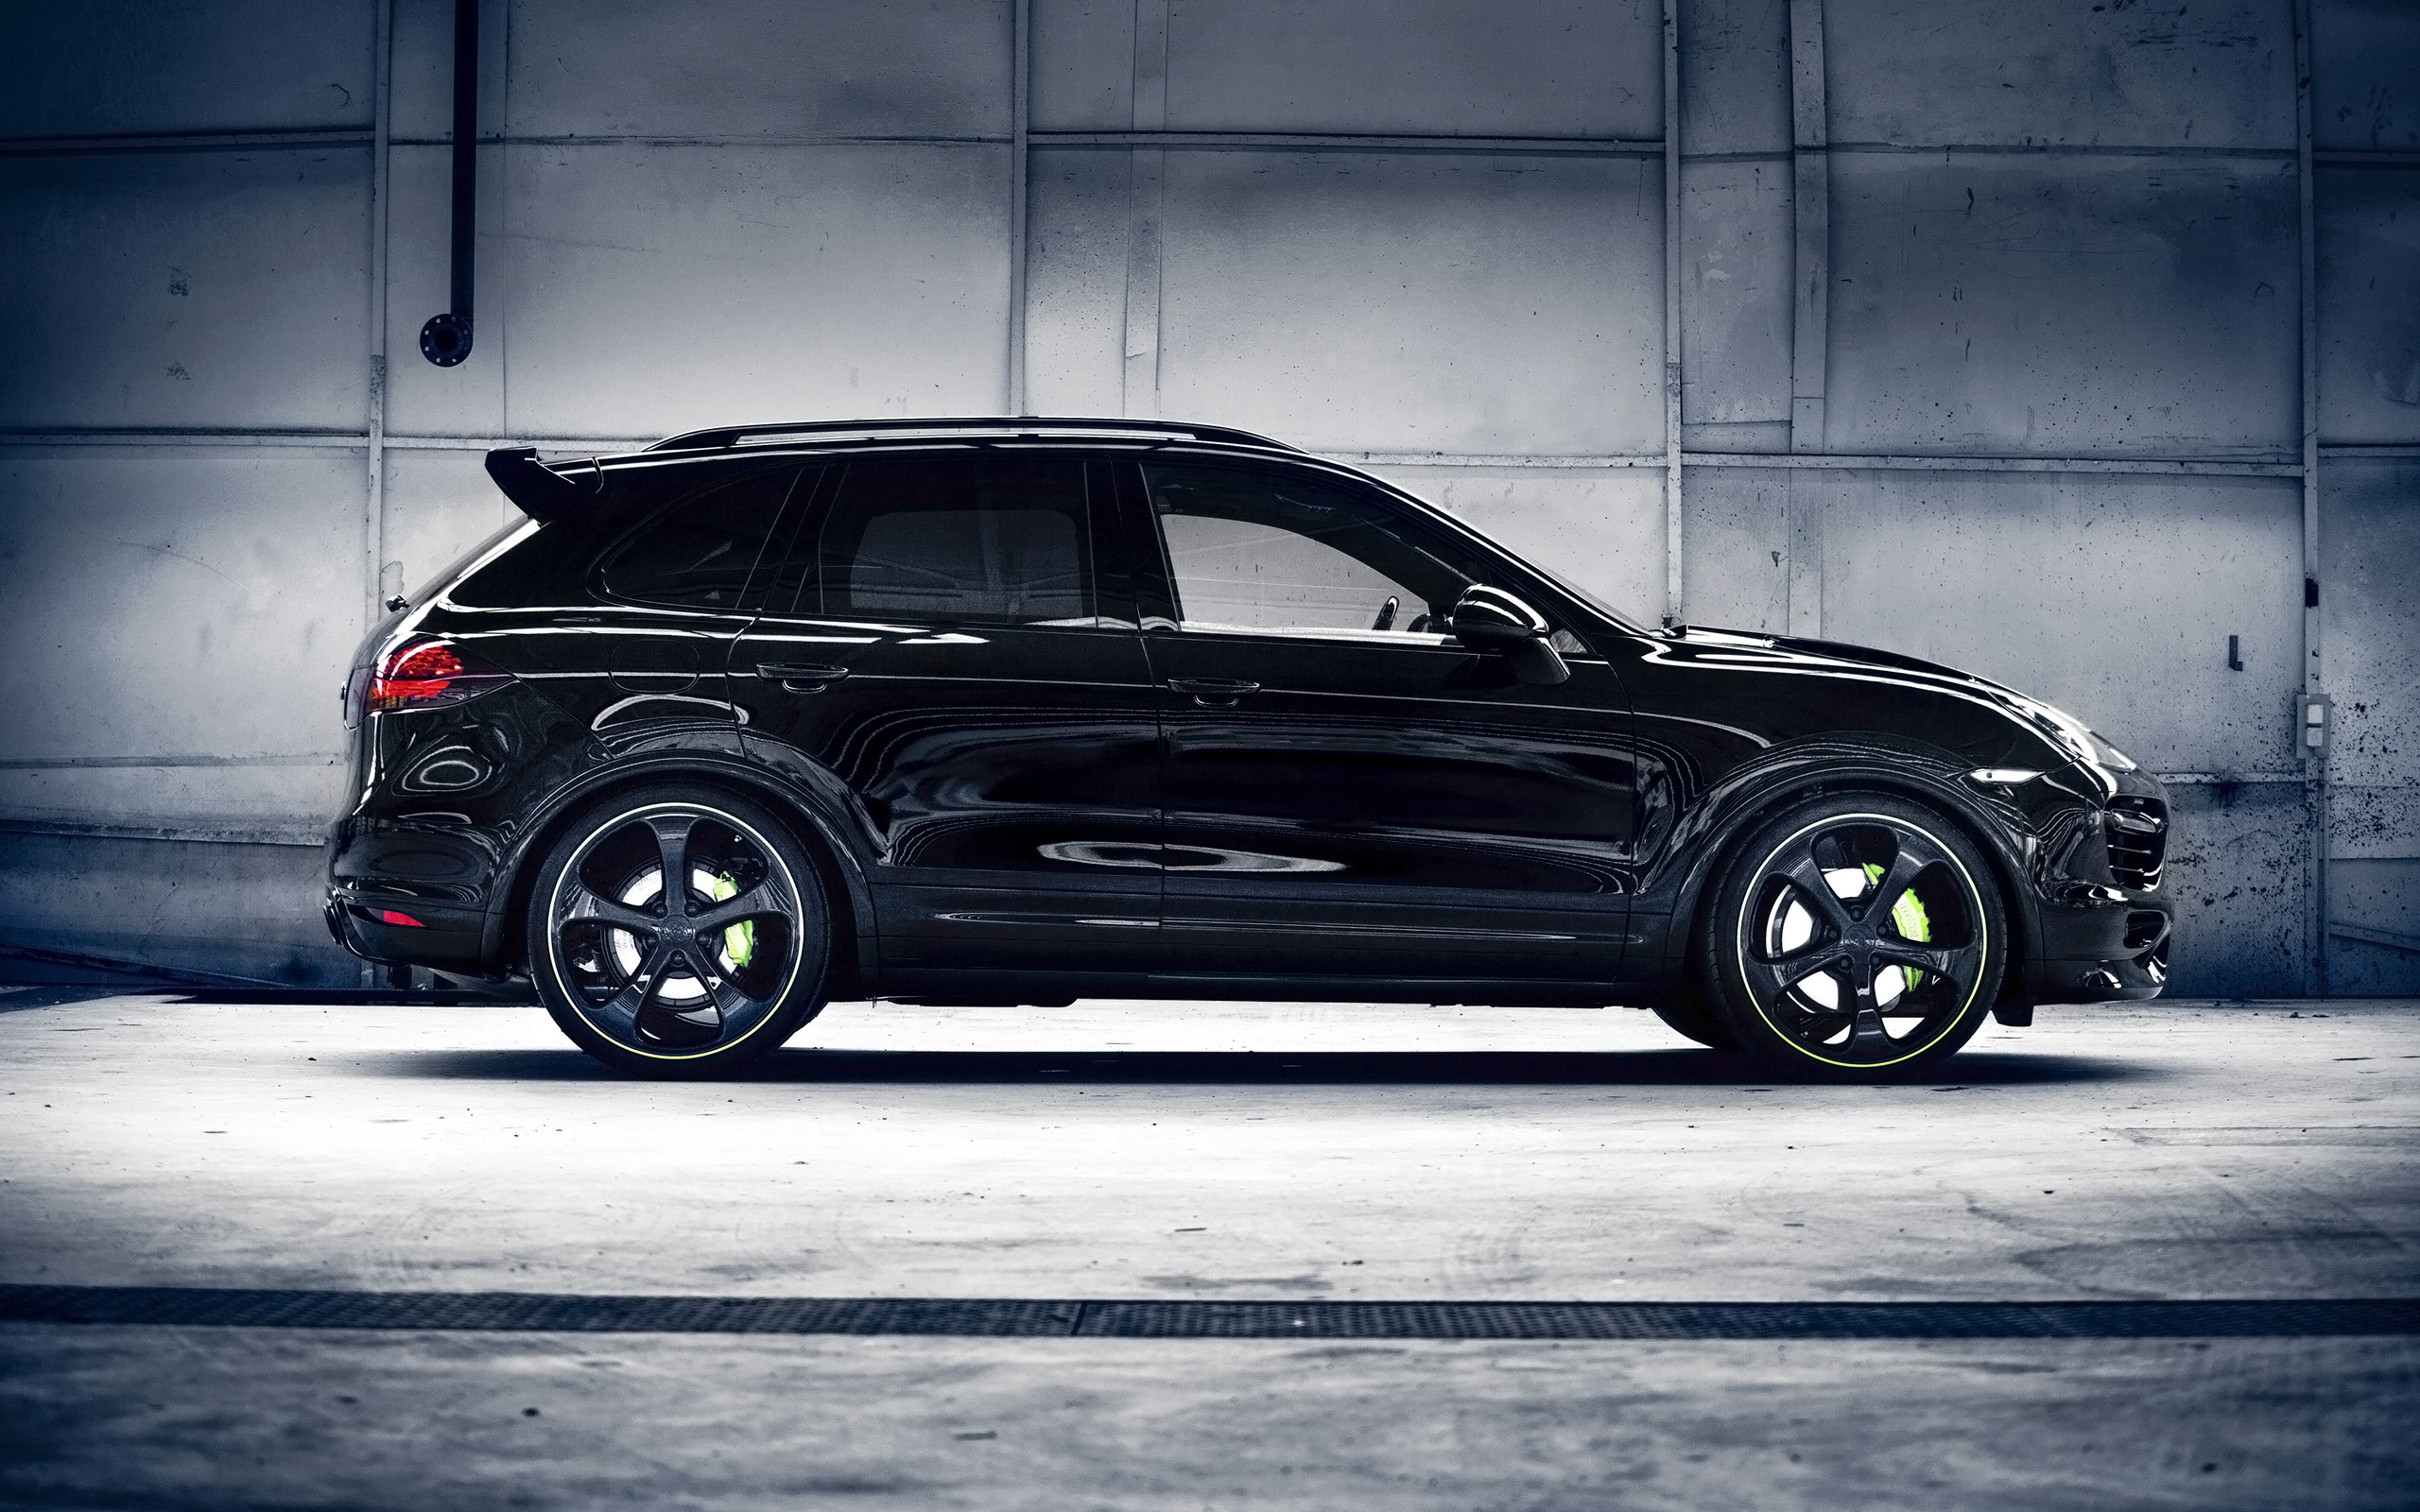 TechArt Porsche Cayenne S Diesel 2013 2 Wallpaper | HD Car Wallpapers